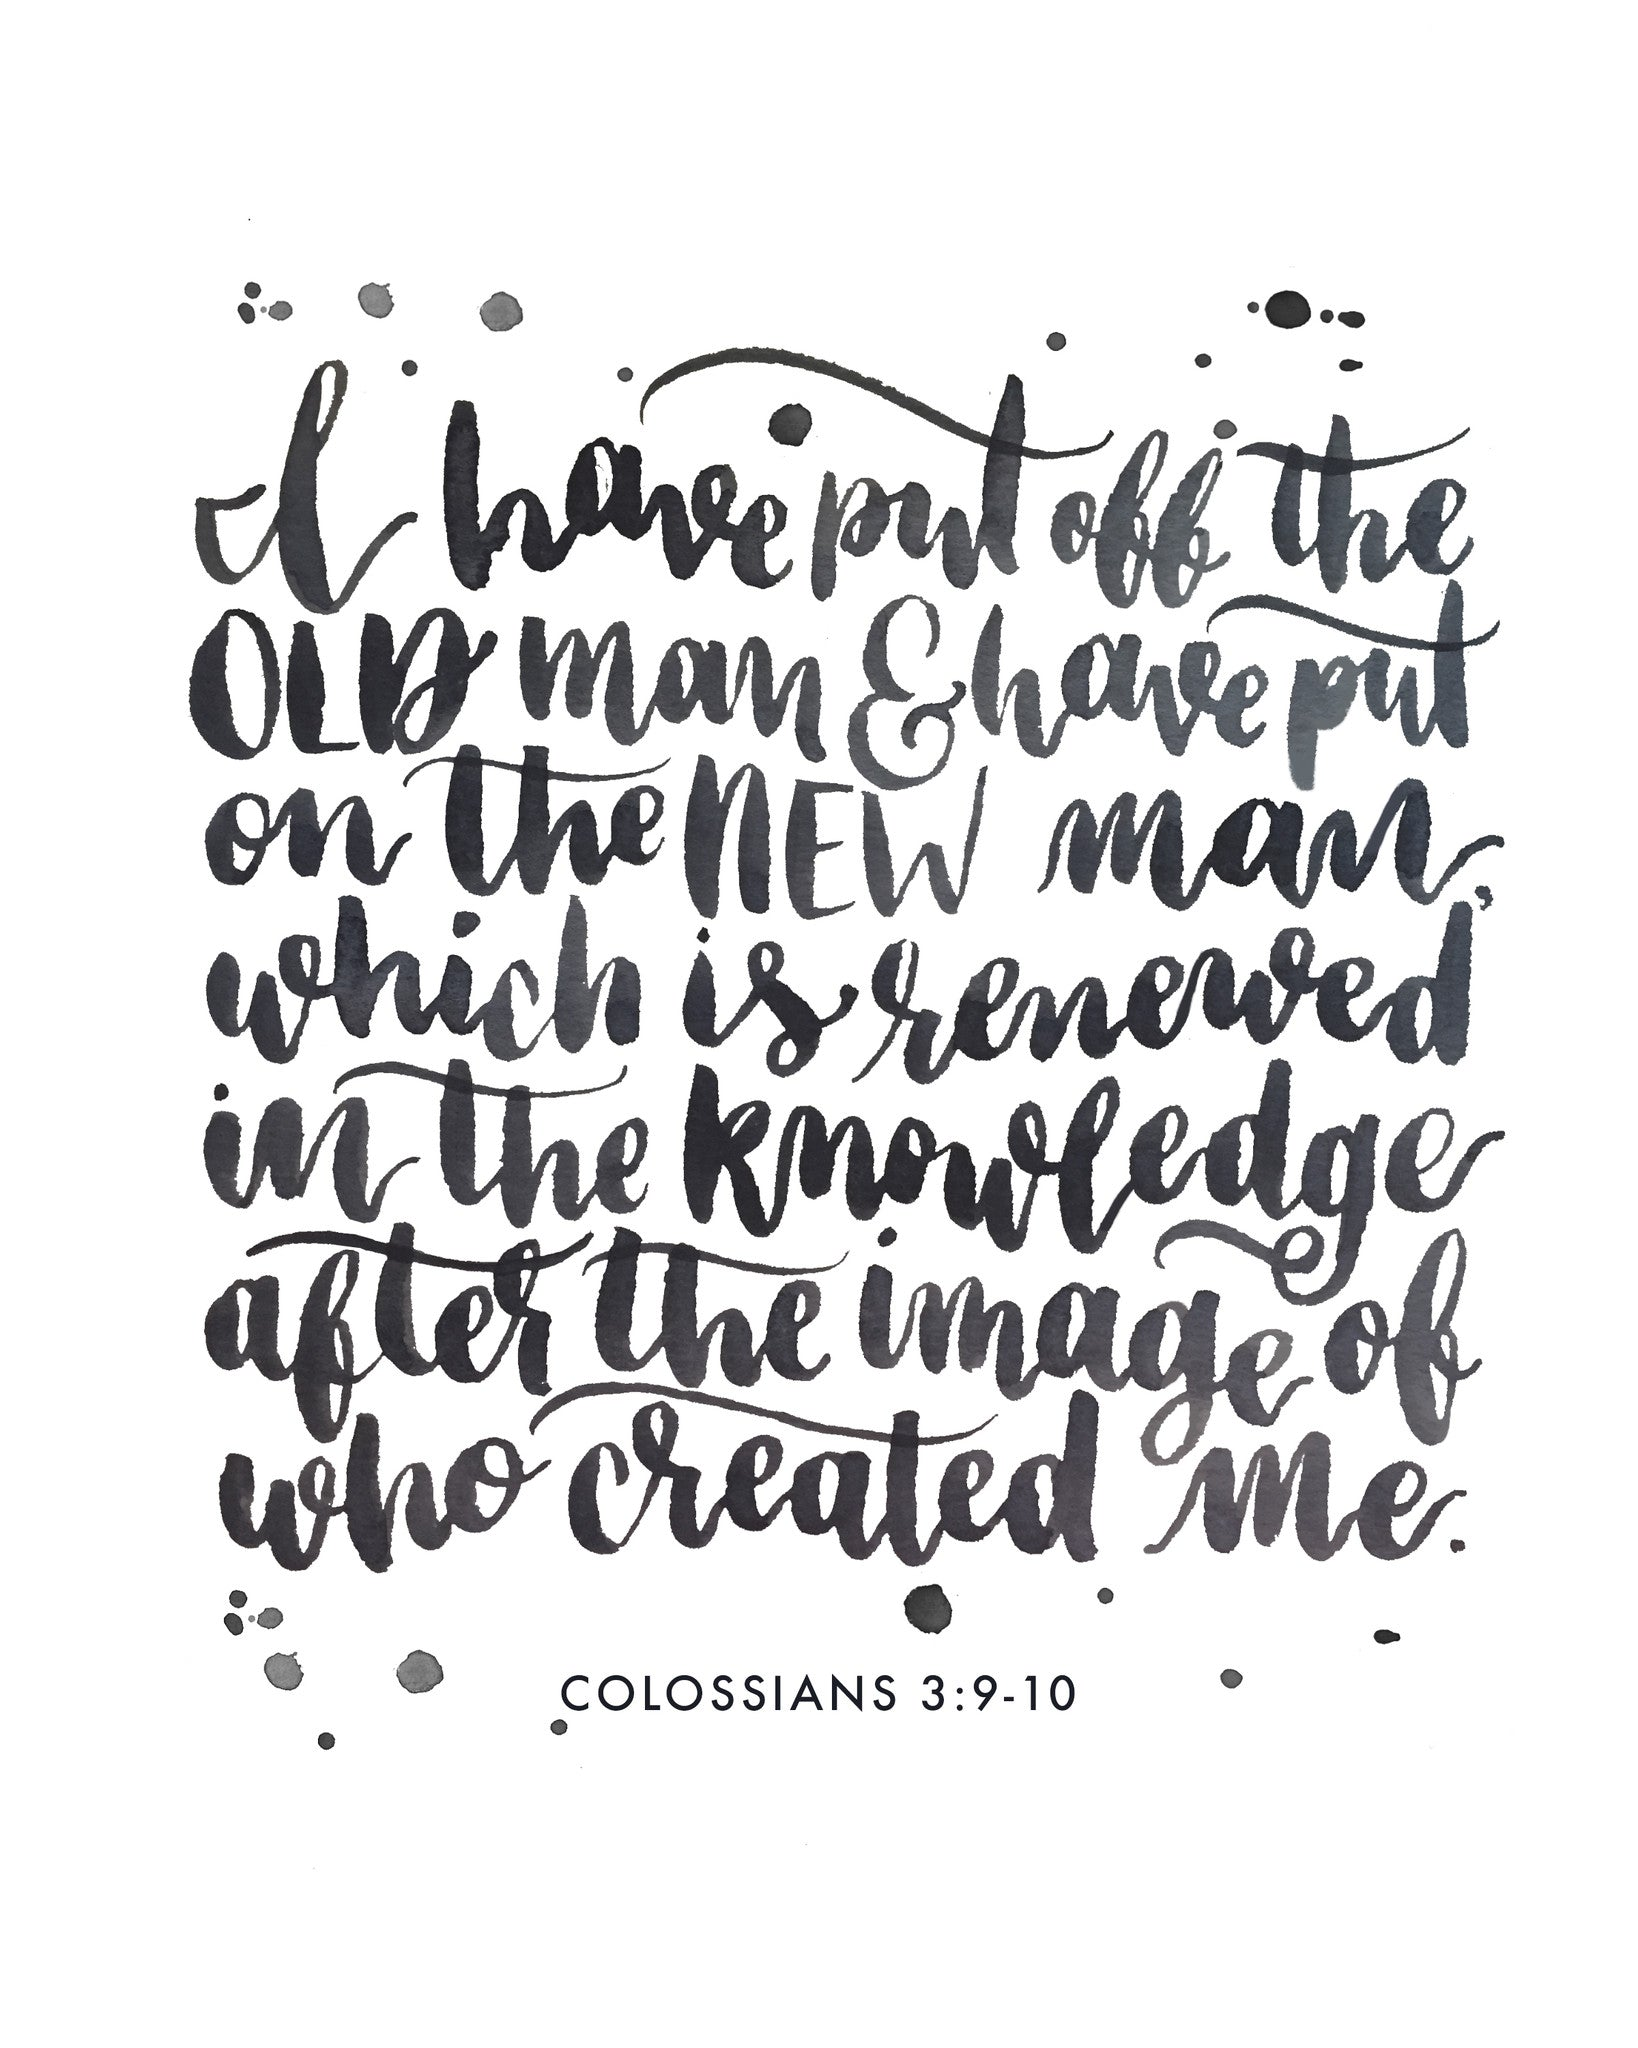 I am a New Creation | Colossians 3:9-10 | Day 13